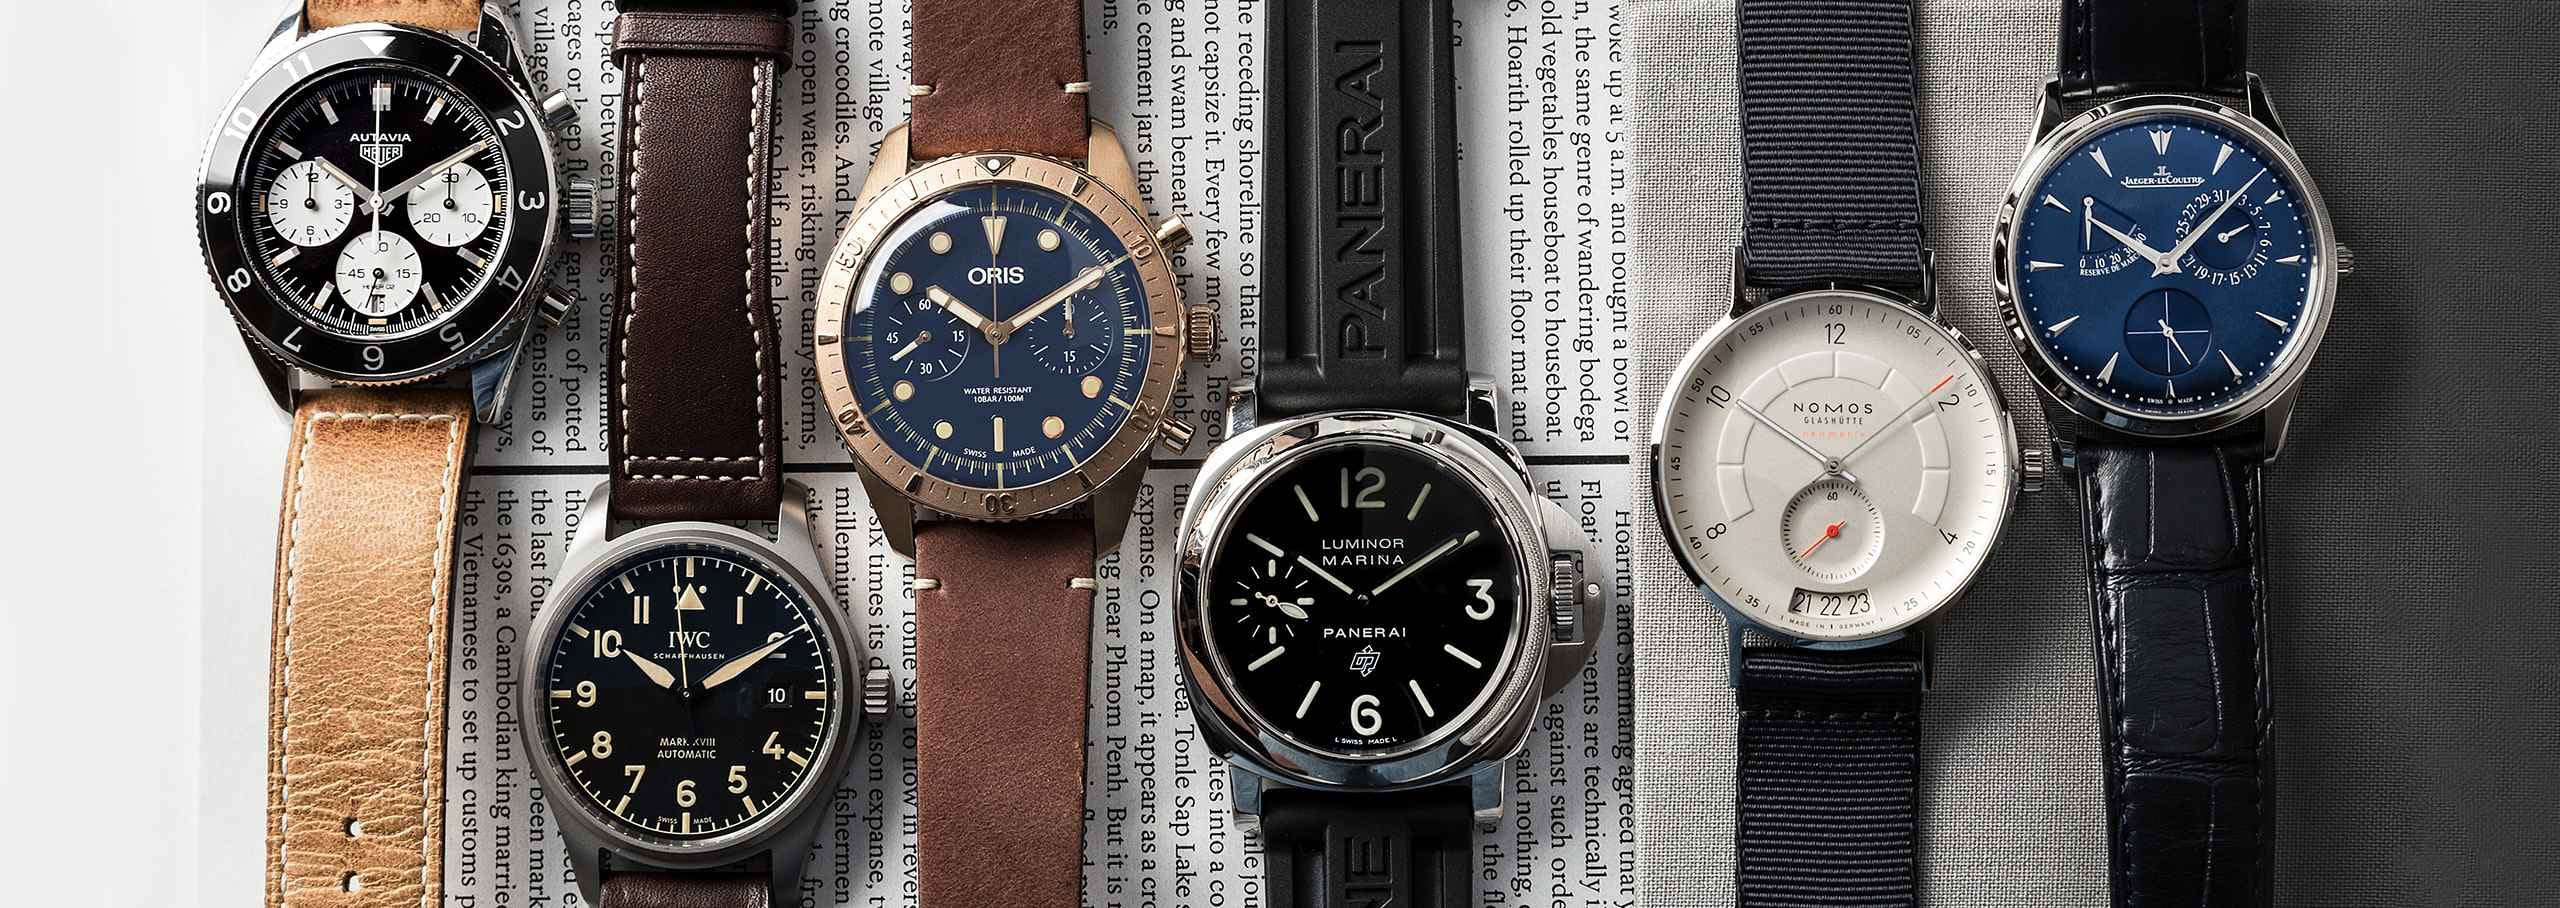 How To Spot A Quality Watch